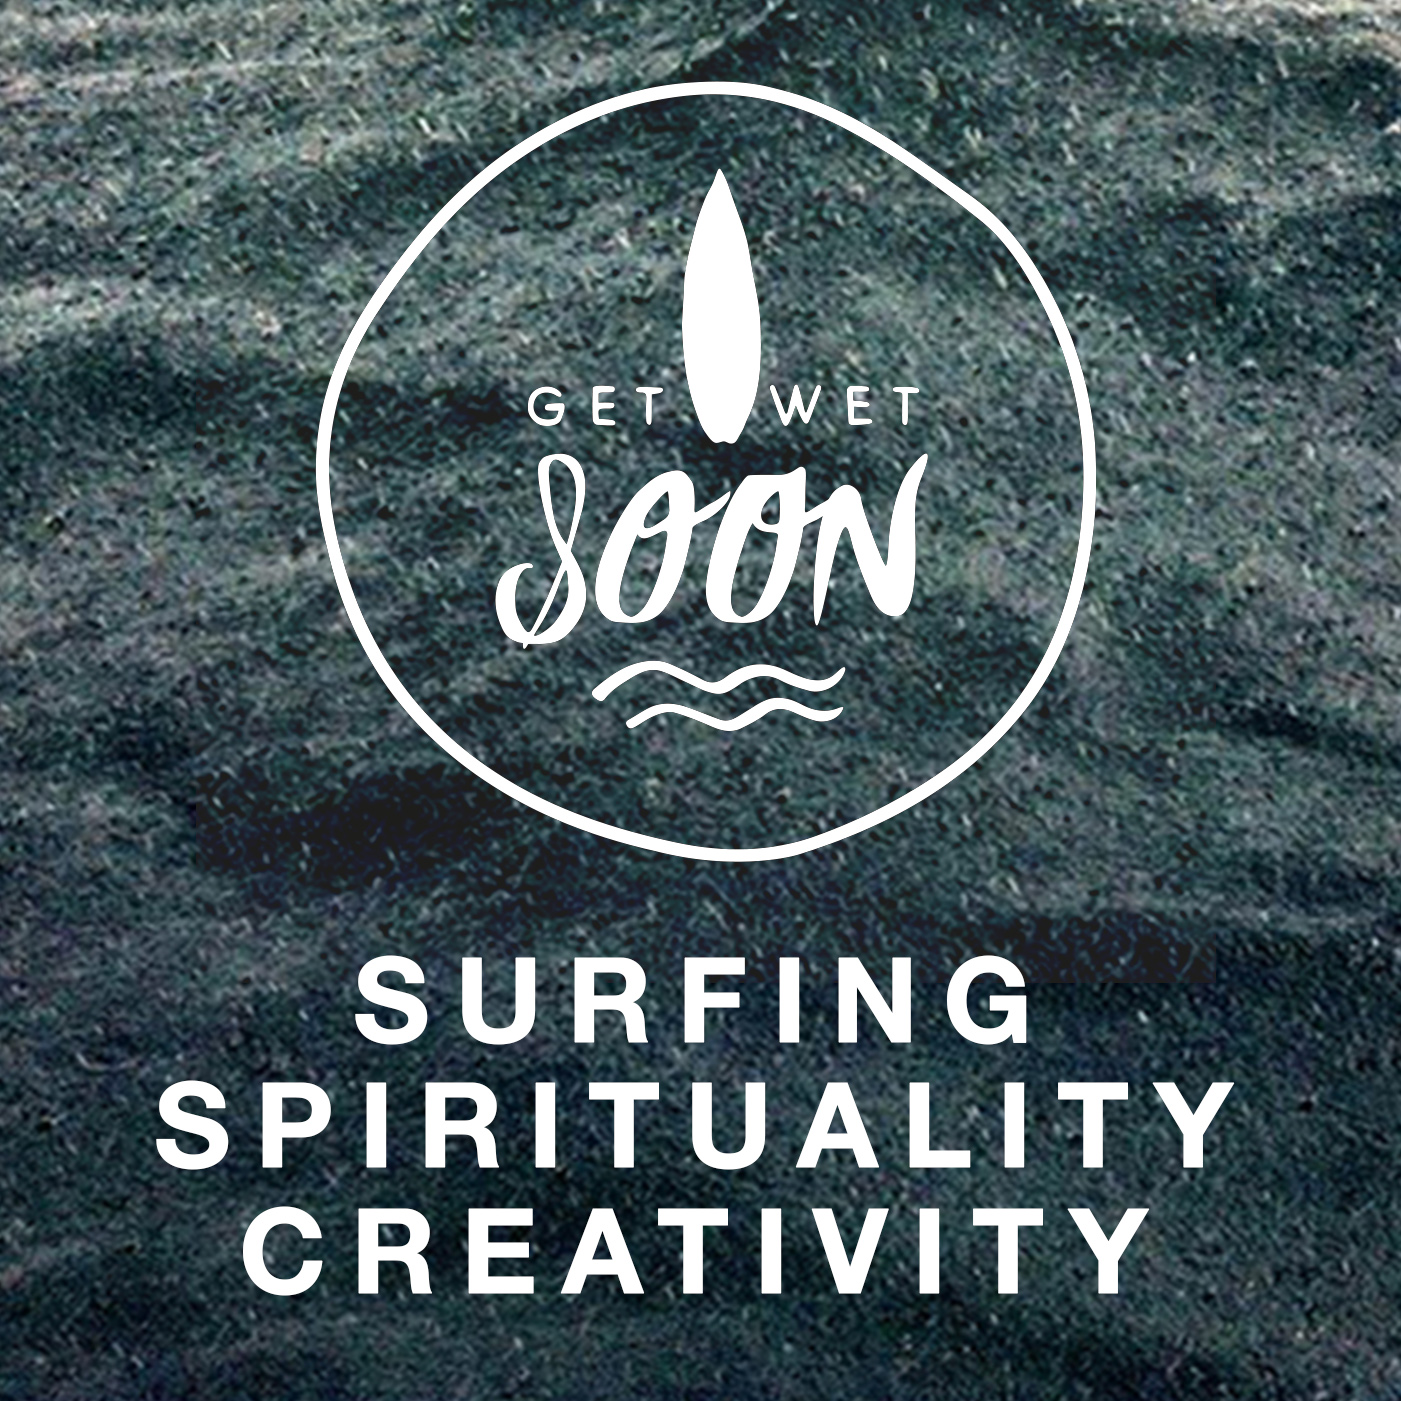 GET WET SOON · Dive into Surfing, Yoga and Creativity